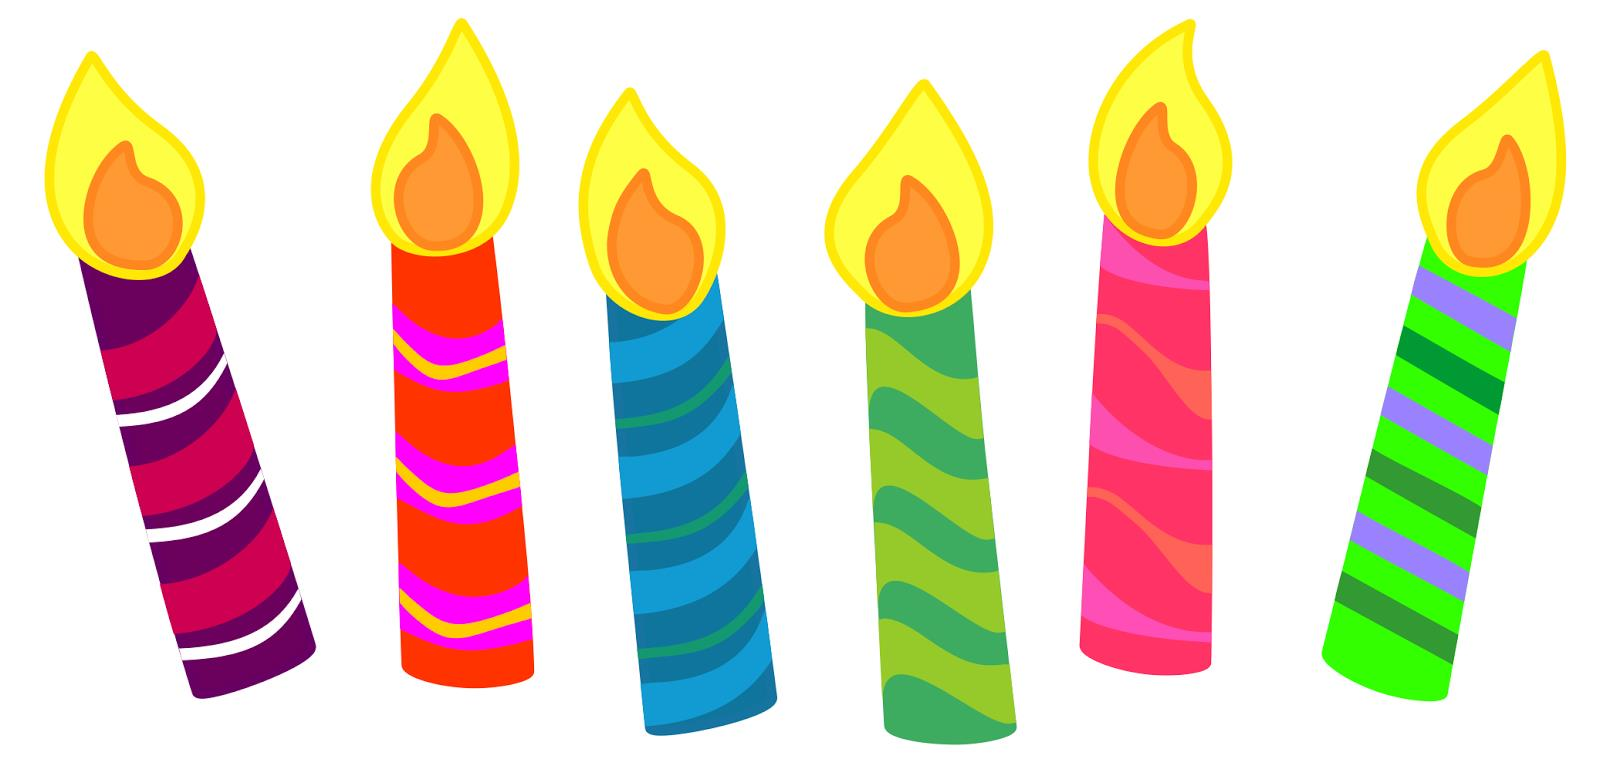 birthday candle drawing ; birthday-cakes-and-candles-clipart-11